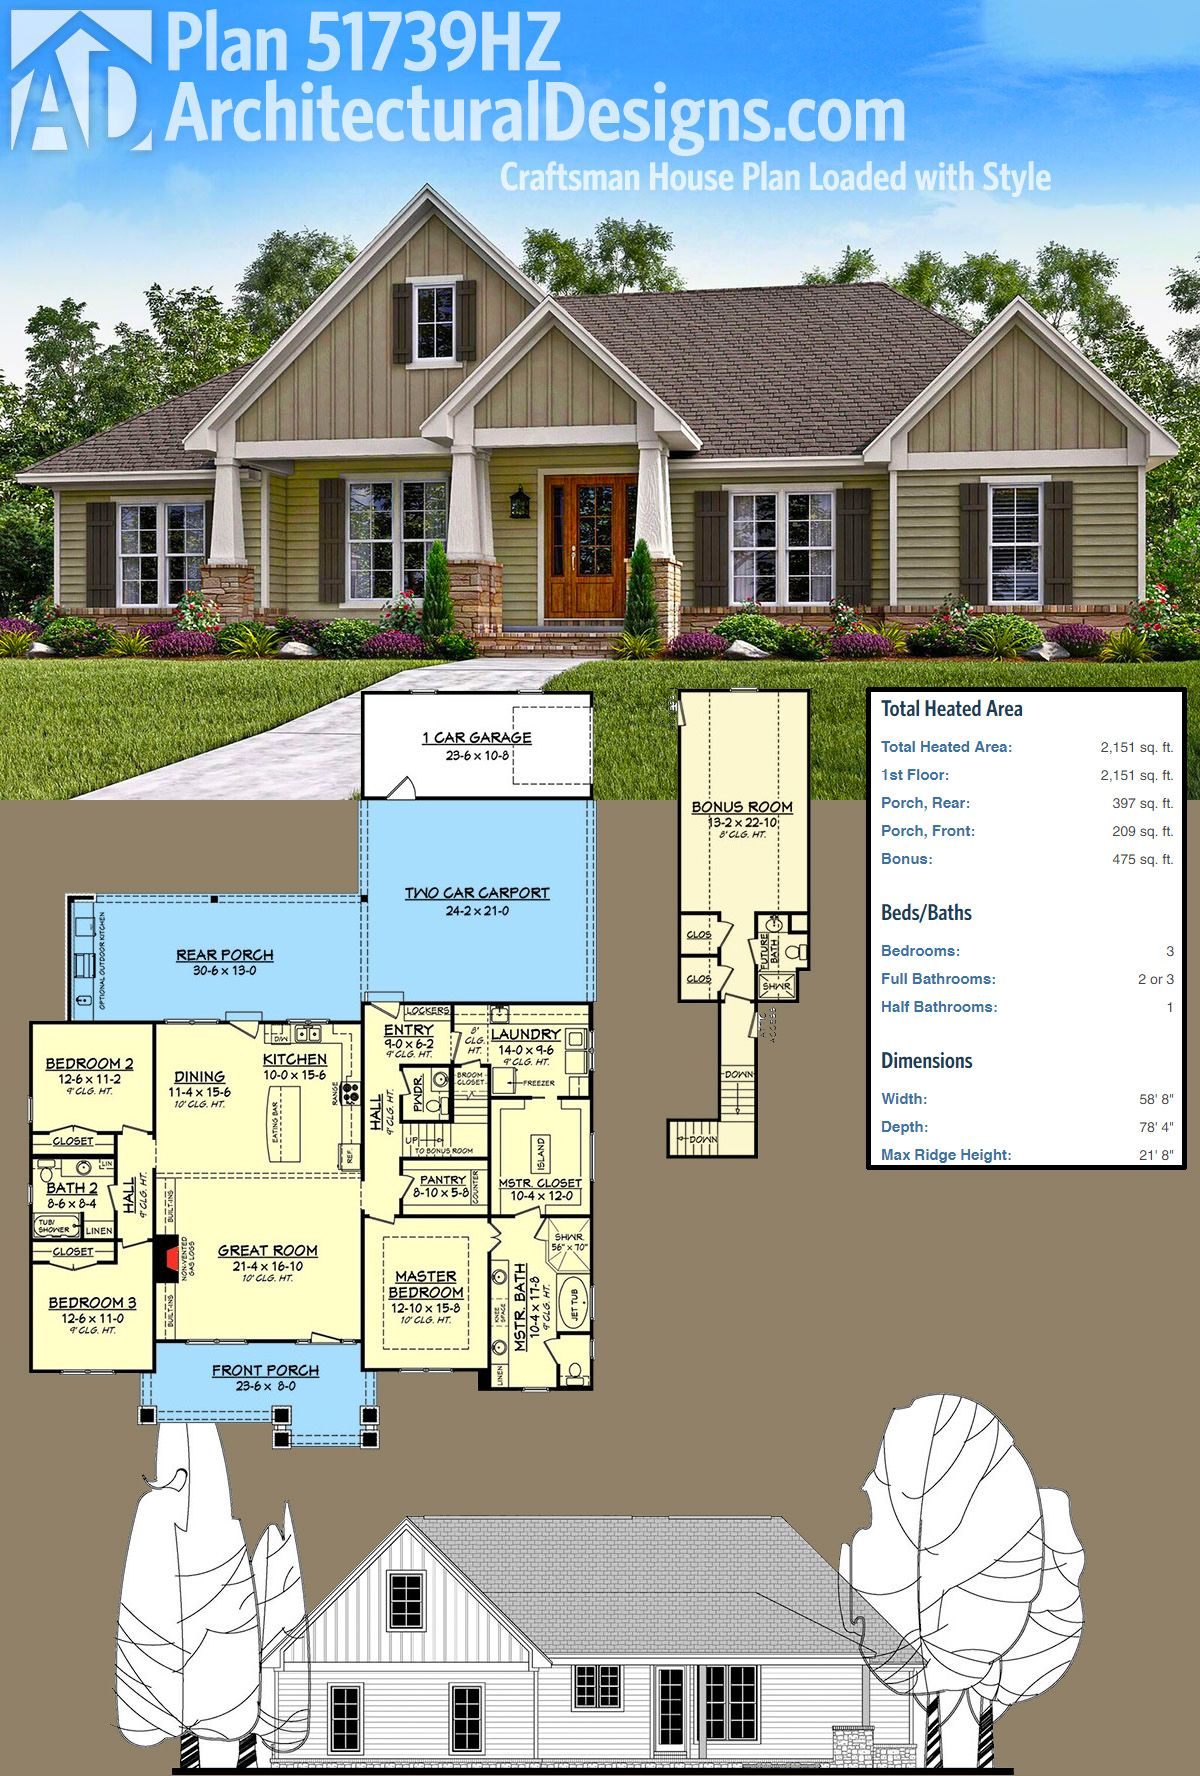 Plan 51739hz Craftsman House Plan Loaded With Style Craftsman House Plan Craftsman House Craftsman House Plans